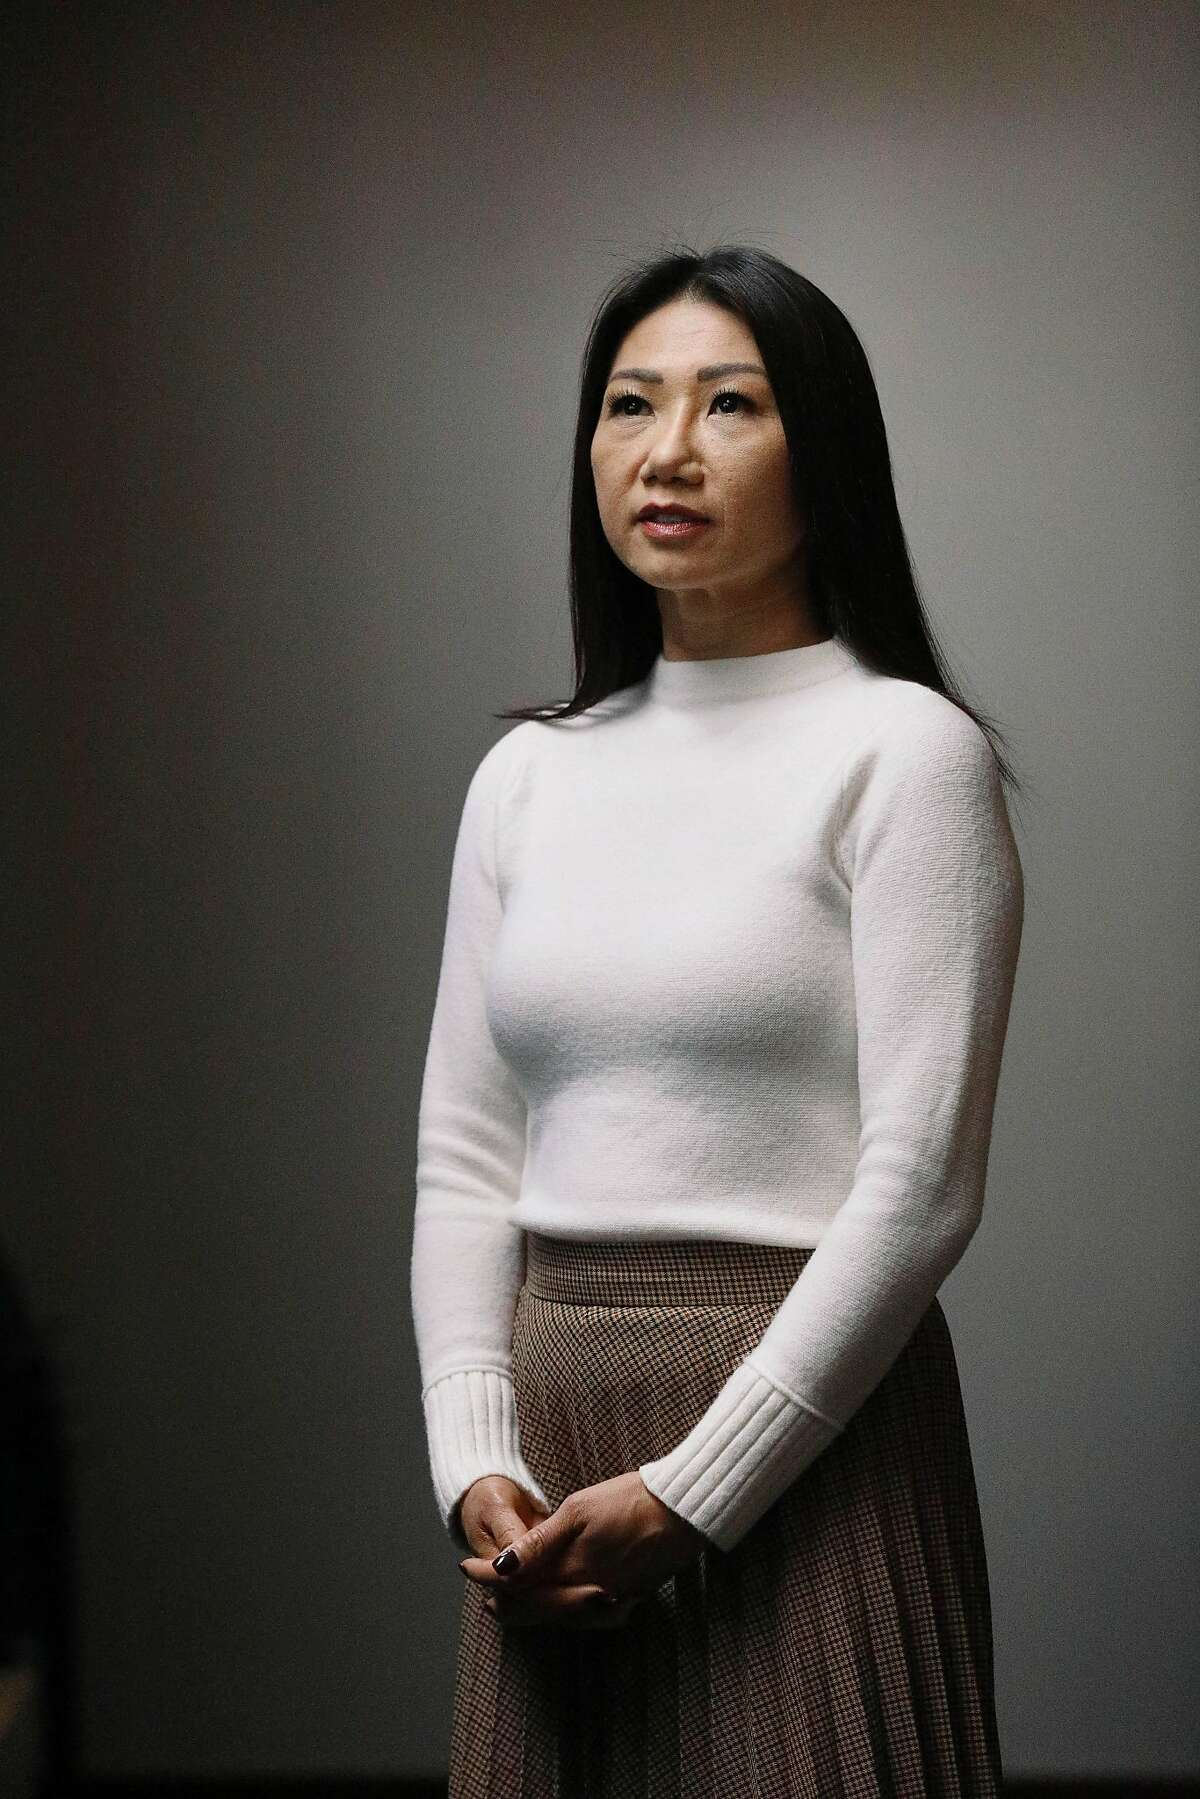 Madison Nguyen, former San Jose vice mayor and executive vice president The Silicon Valley Organization stands for a portrait on Friday, December 14, 2018 in San Jose, Calif.